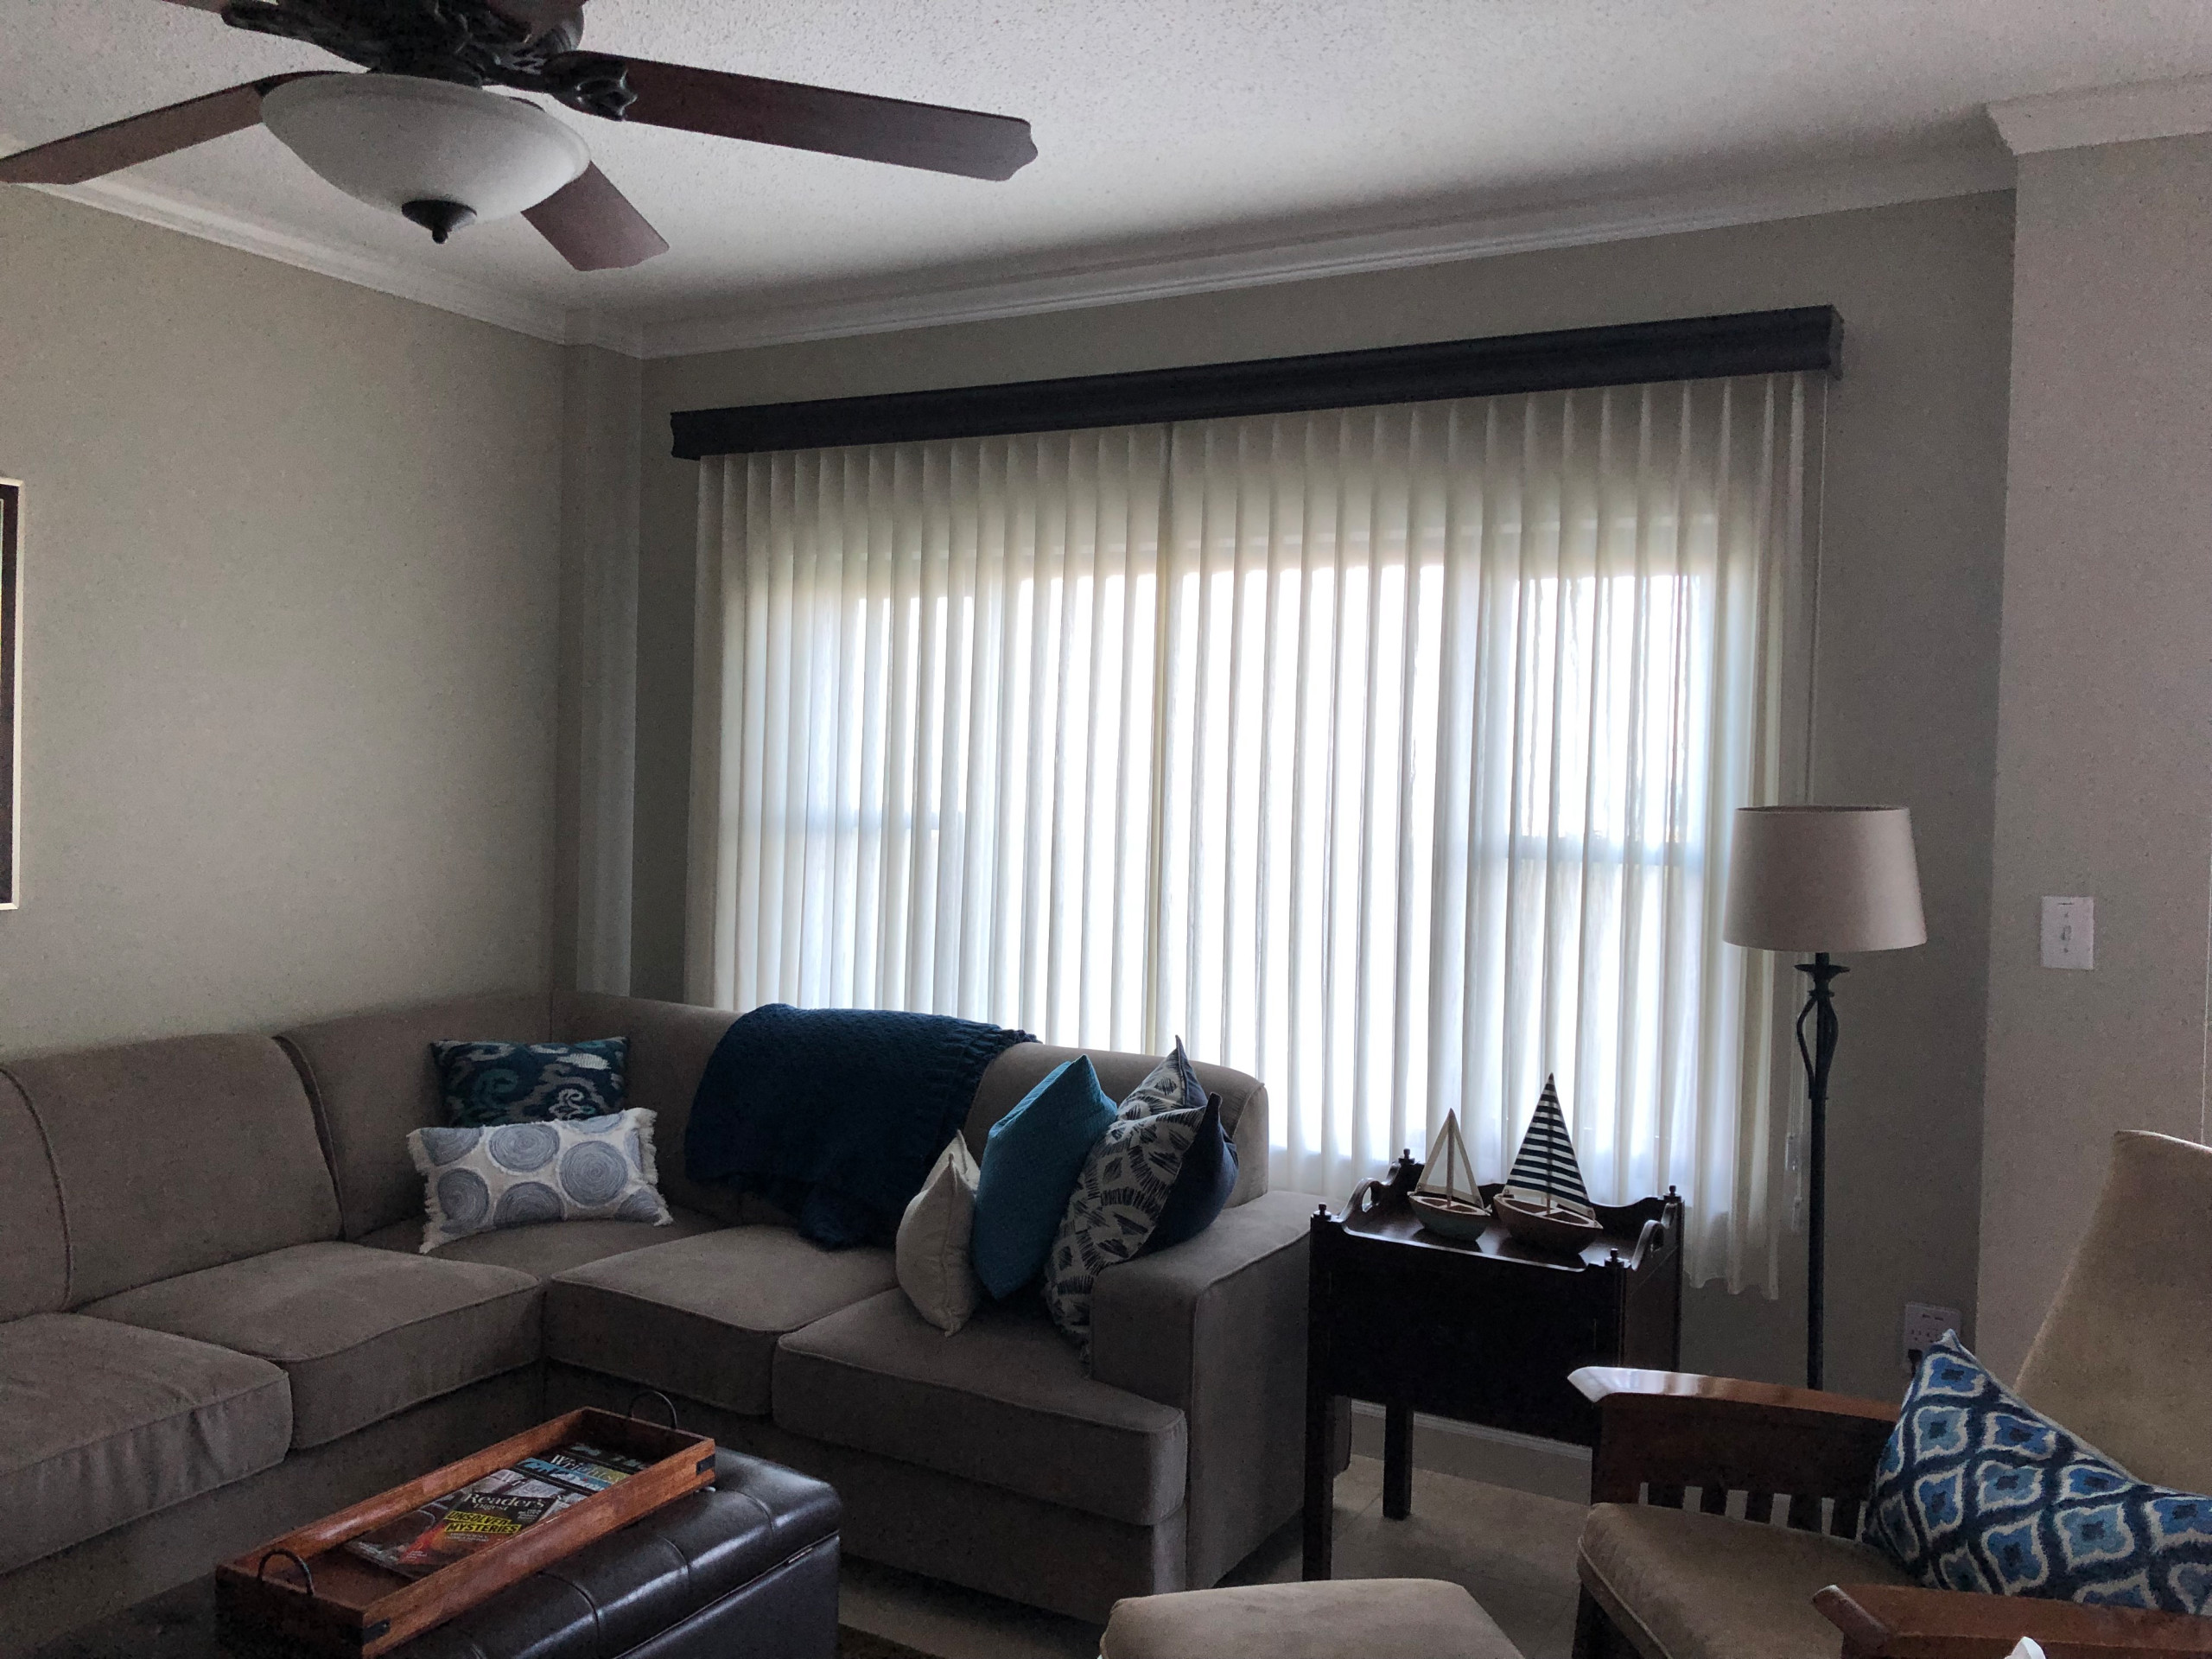 Before & After Sheer Vision Window Treatment